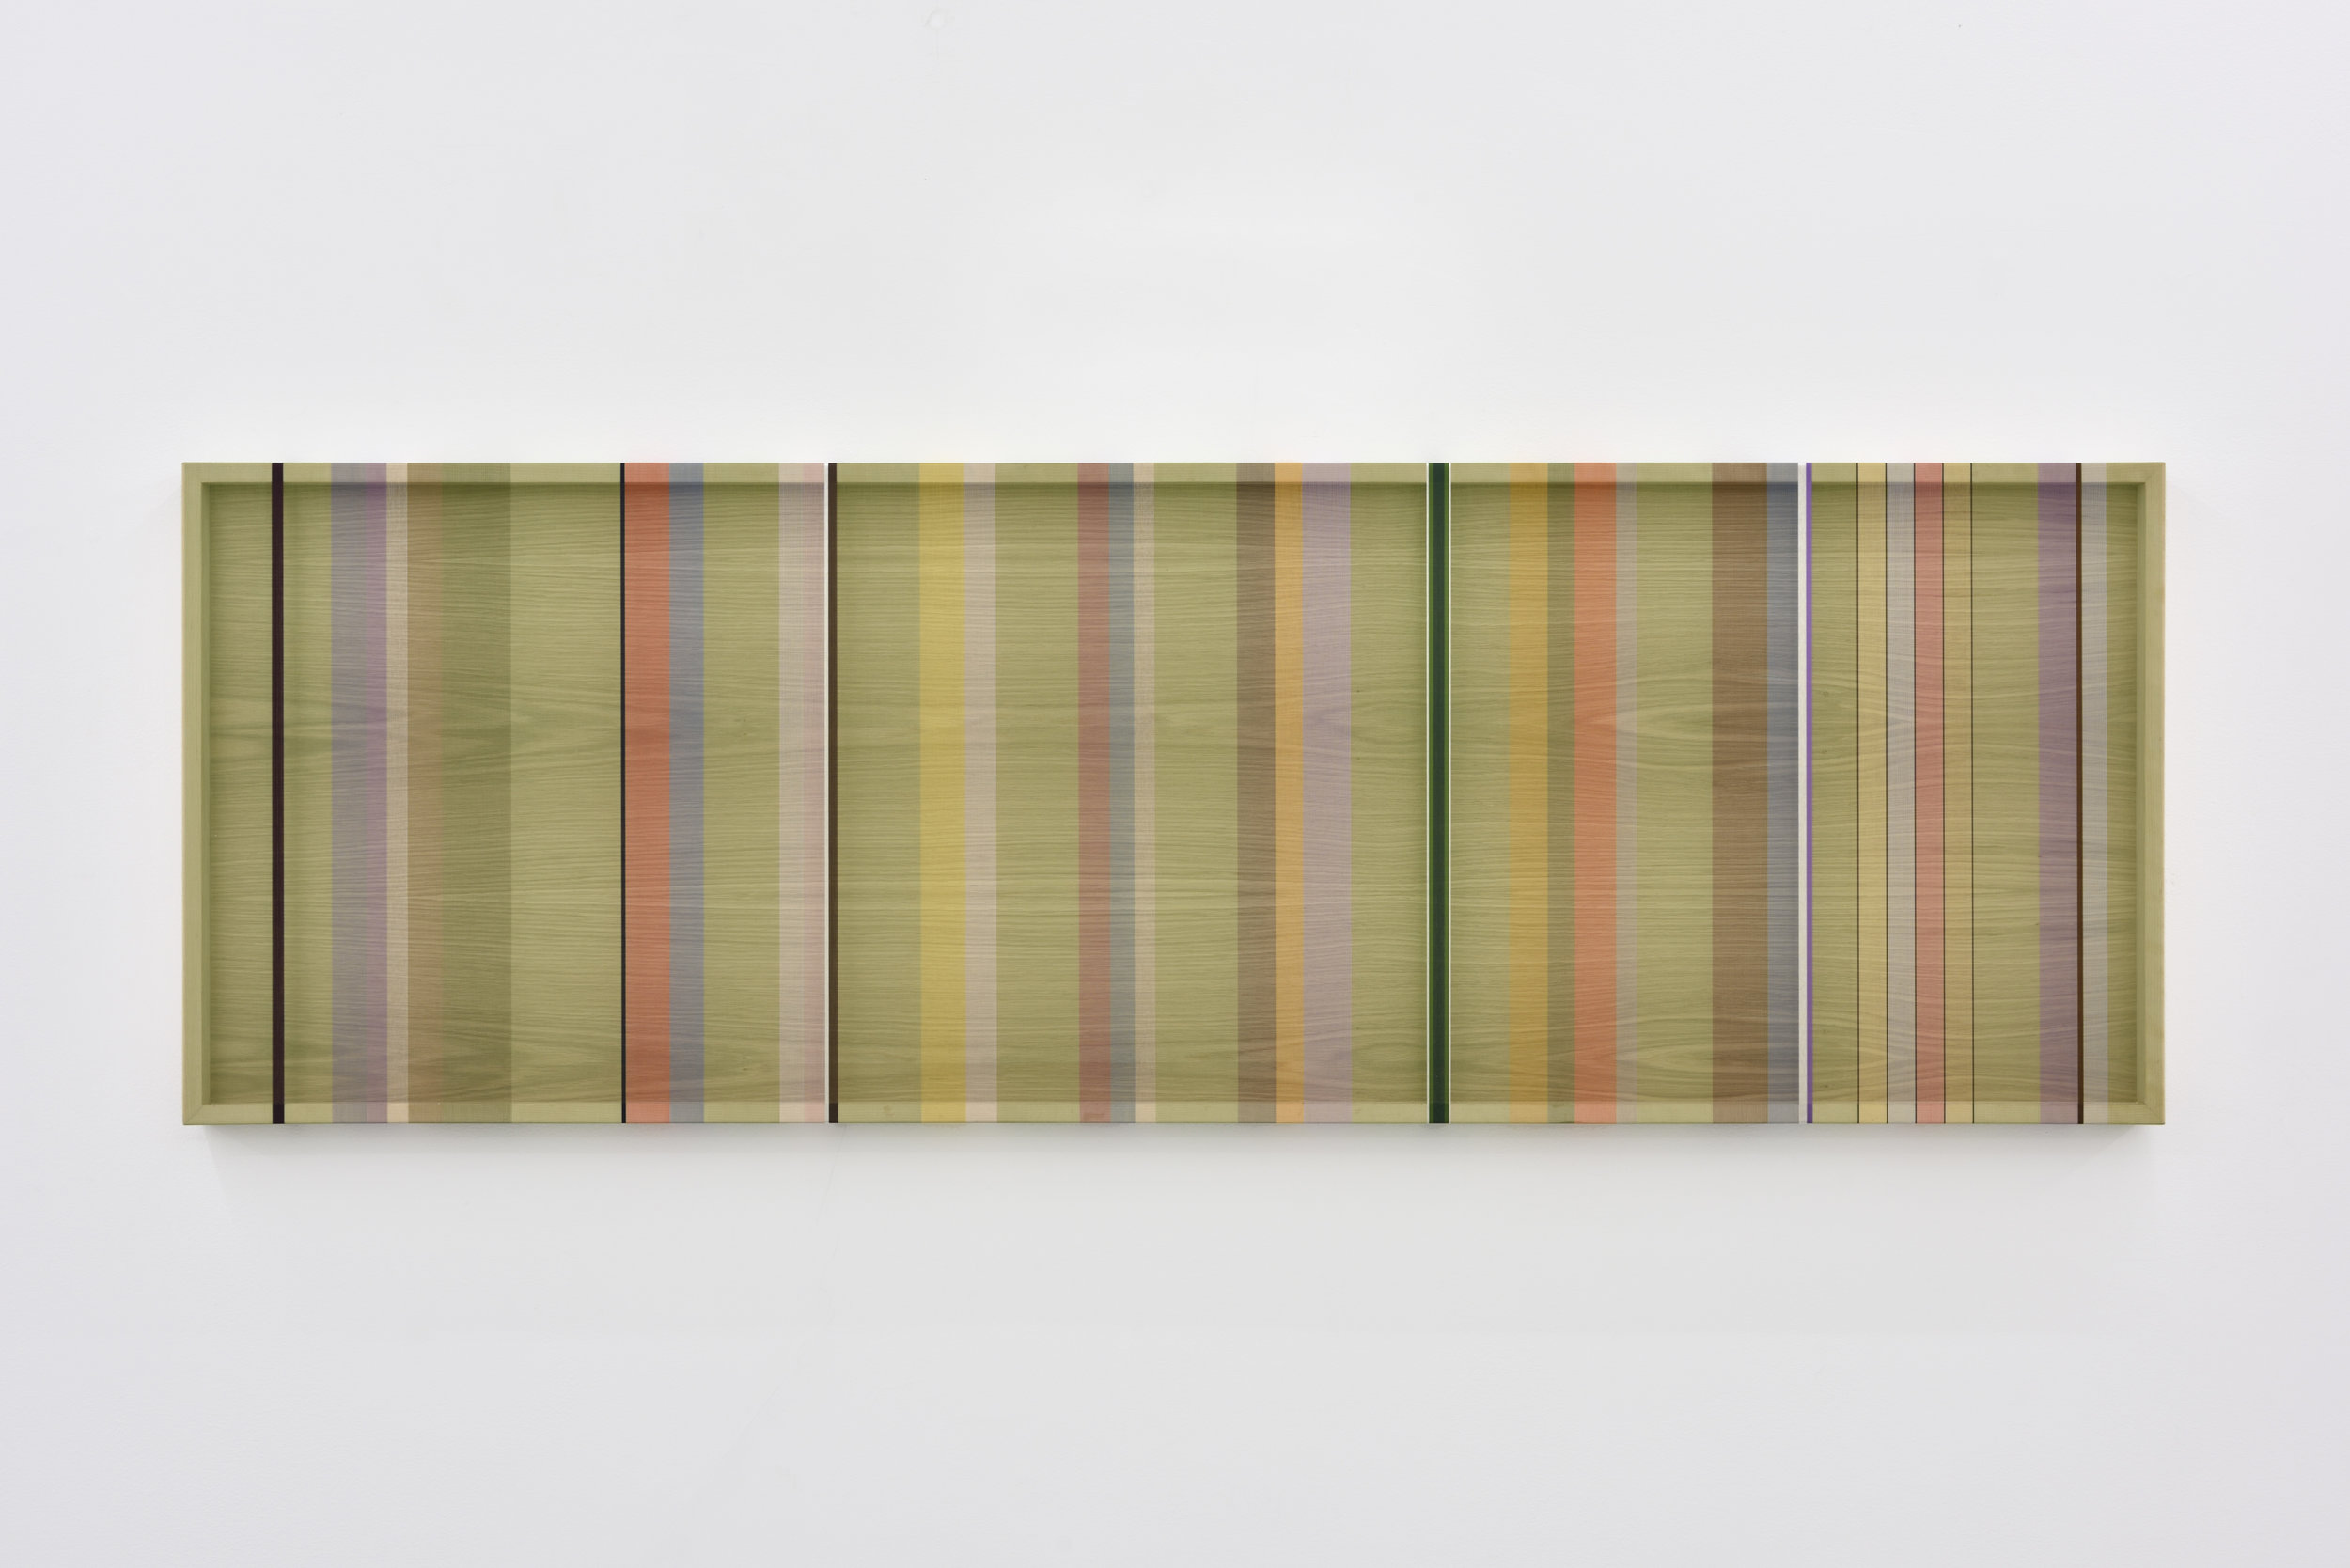 Untitled (Green hovering thread), 2016 single-strand rayon and metallic thread on wood 61 x 183 cm - 24 1/32 x 72 1/16 inches